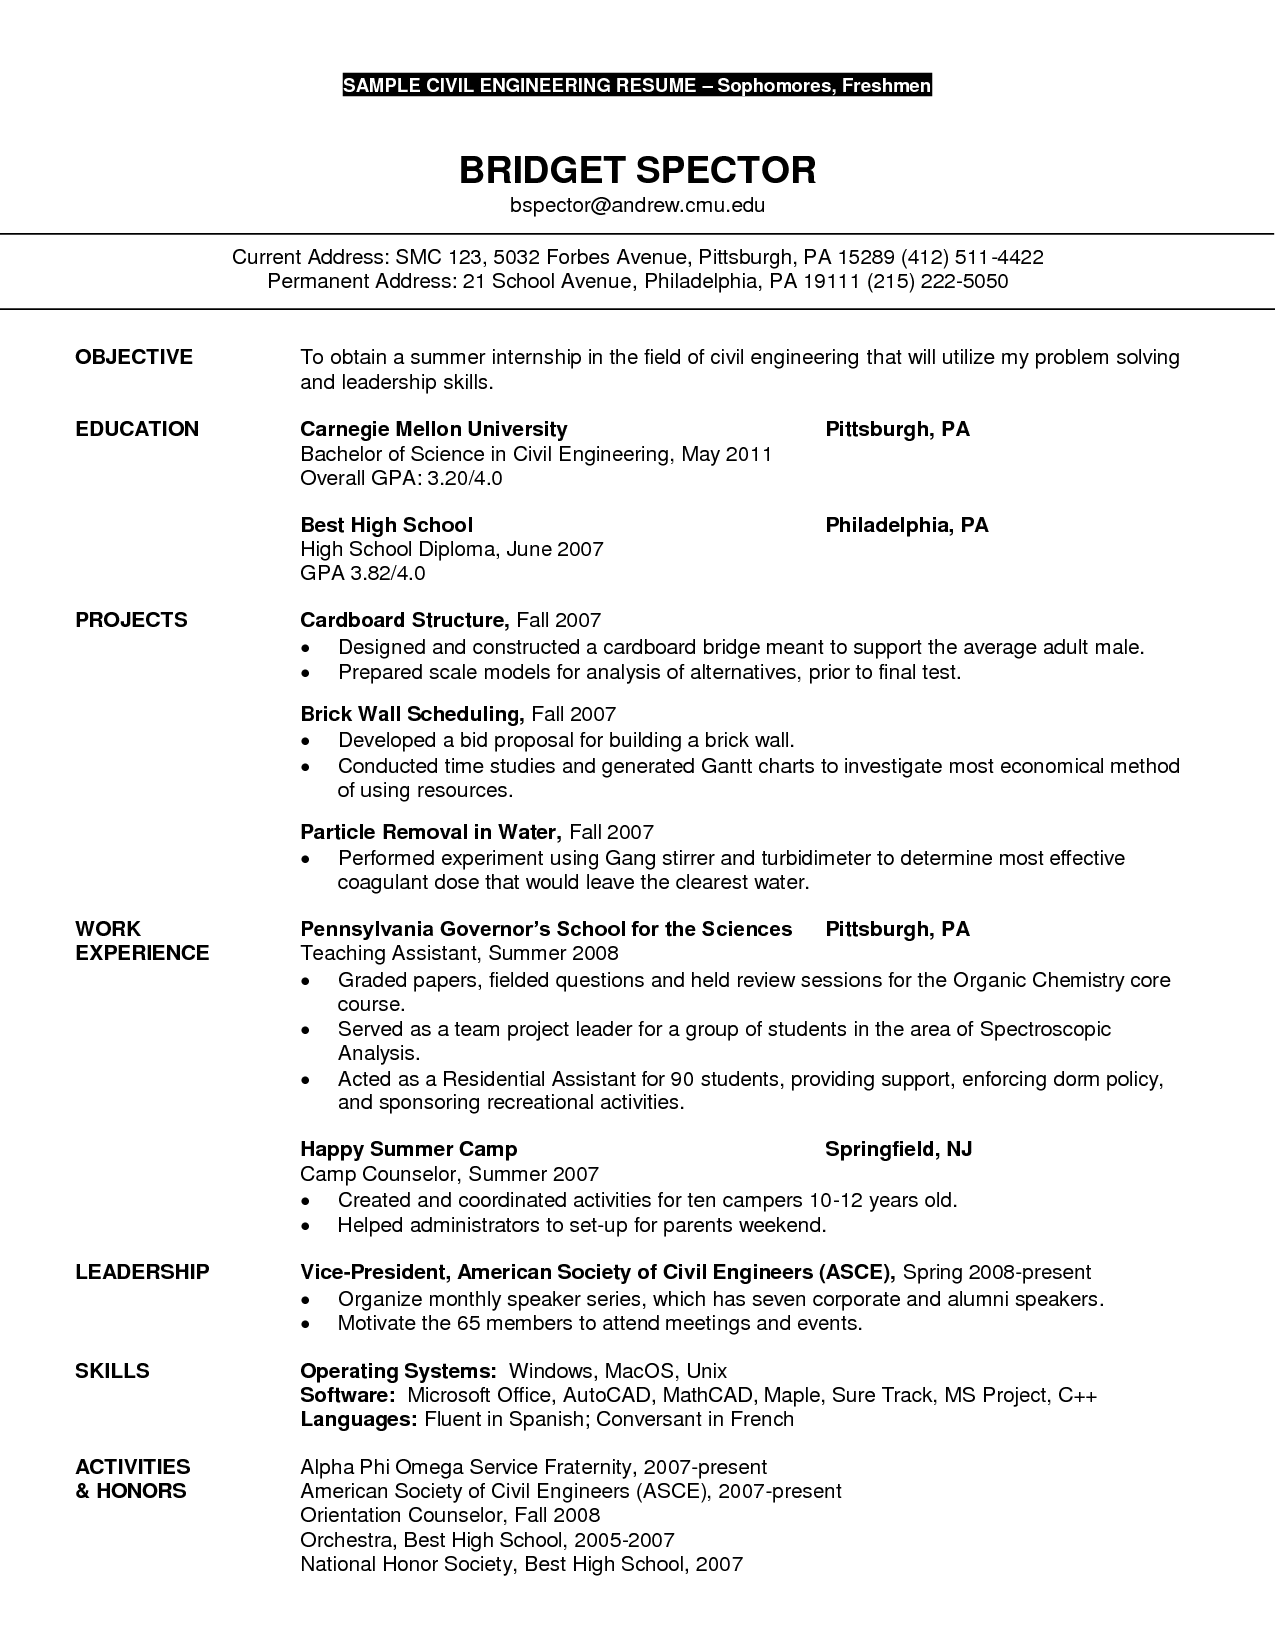 Structural Engineer Resume Civil Engineer Resume Sample  Httpwwwresumecareercivil